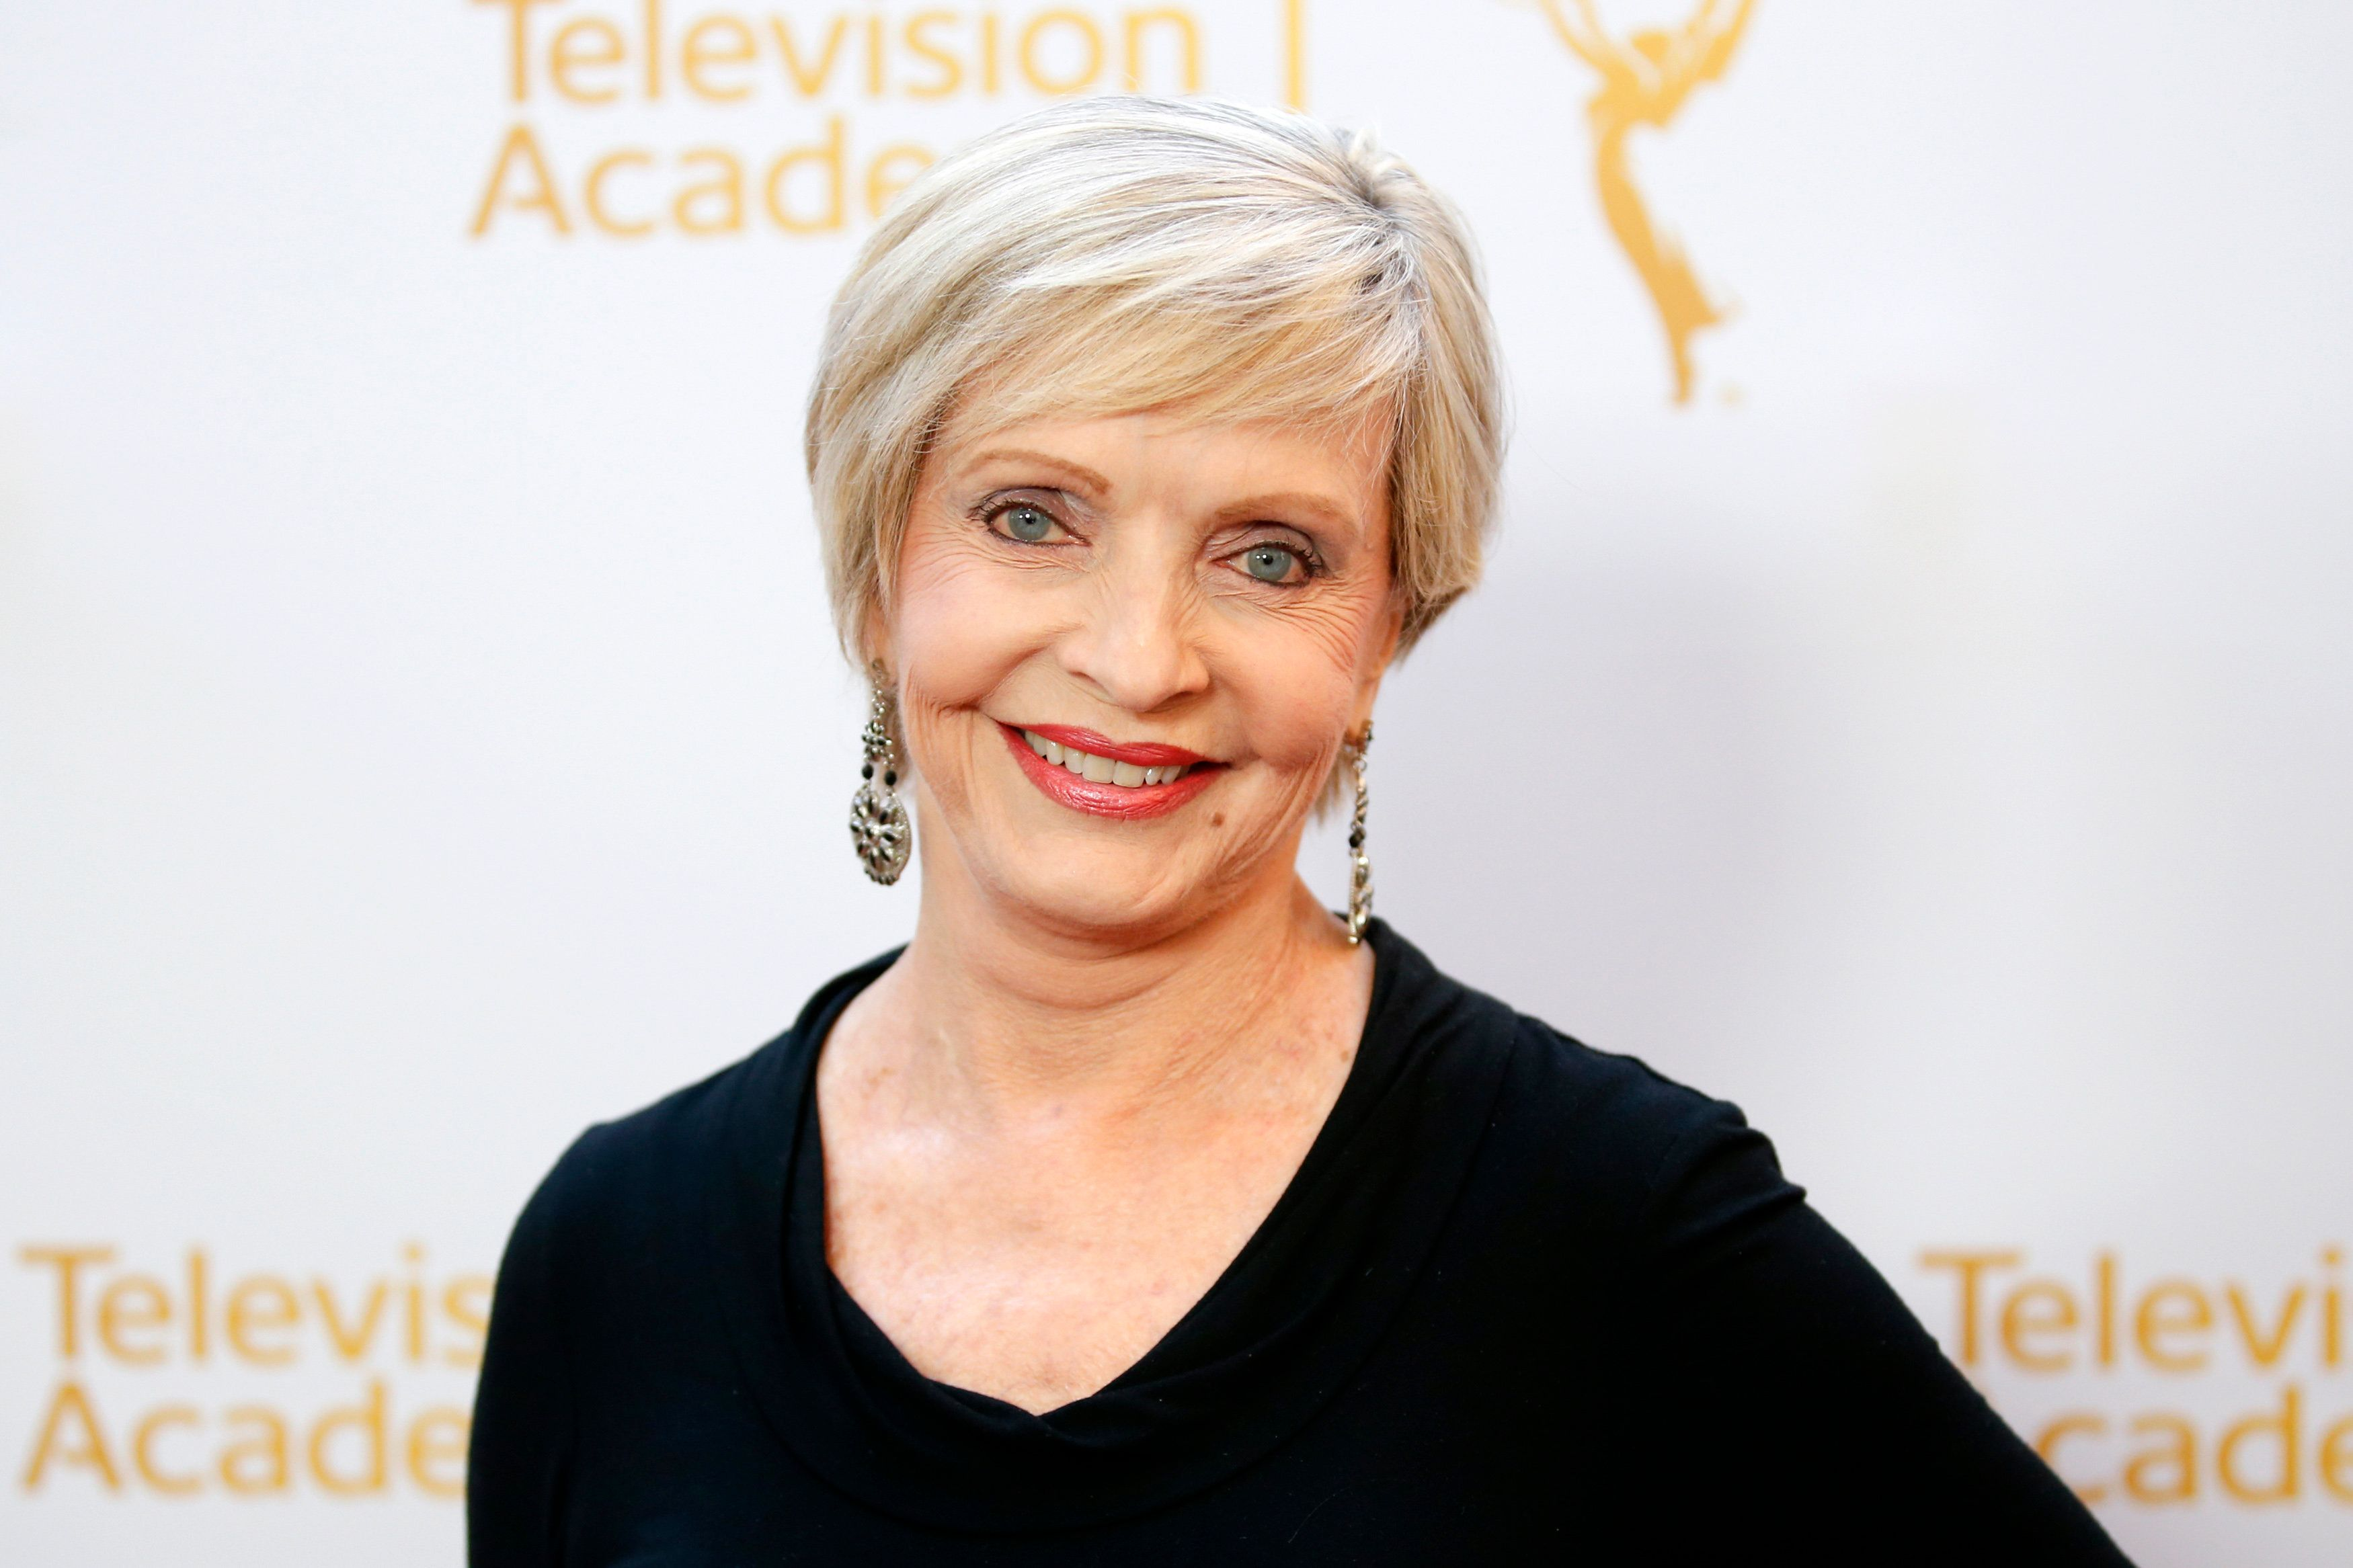 Florence Henderson died at the age of 82 in Los Angeles, her rep